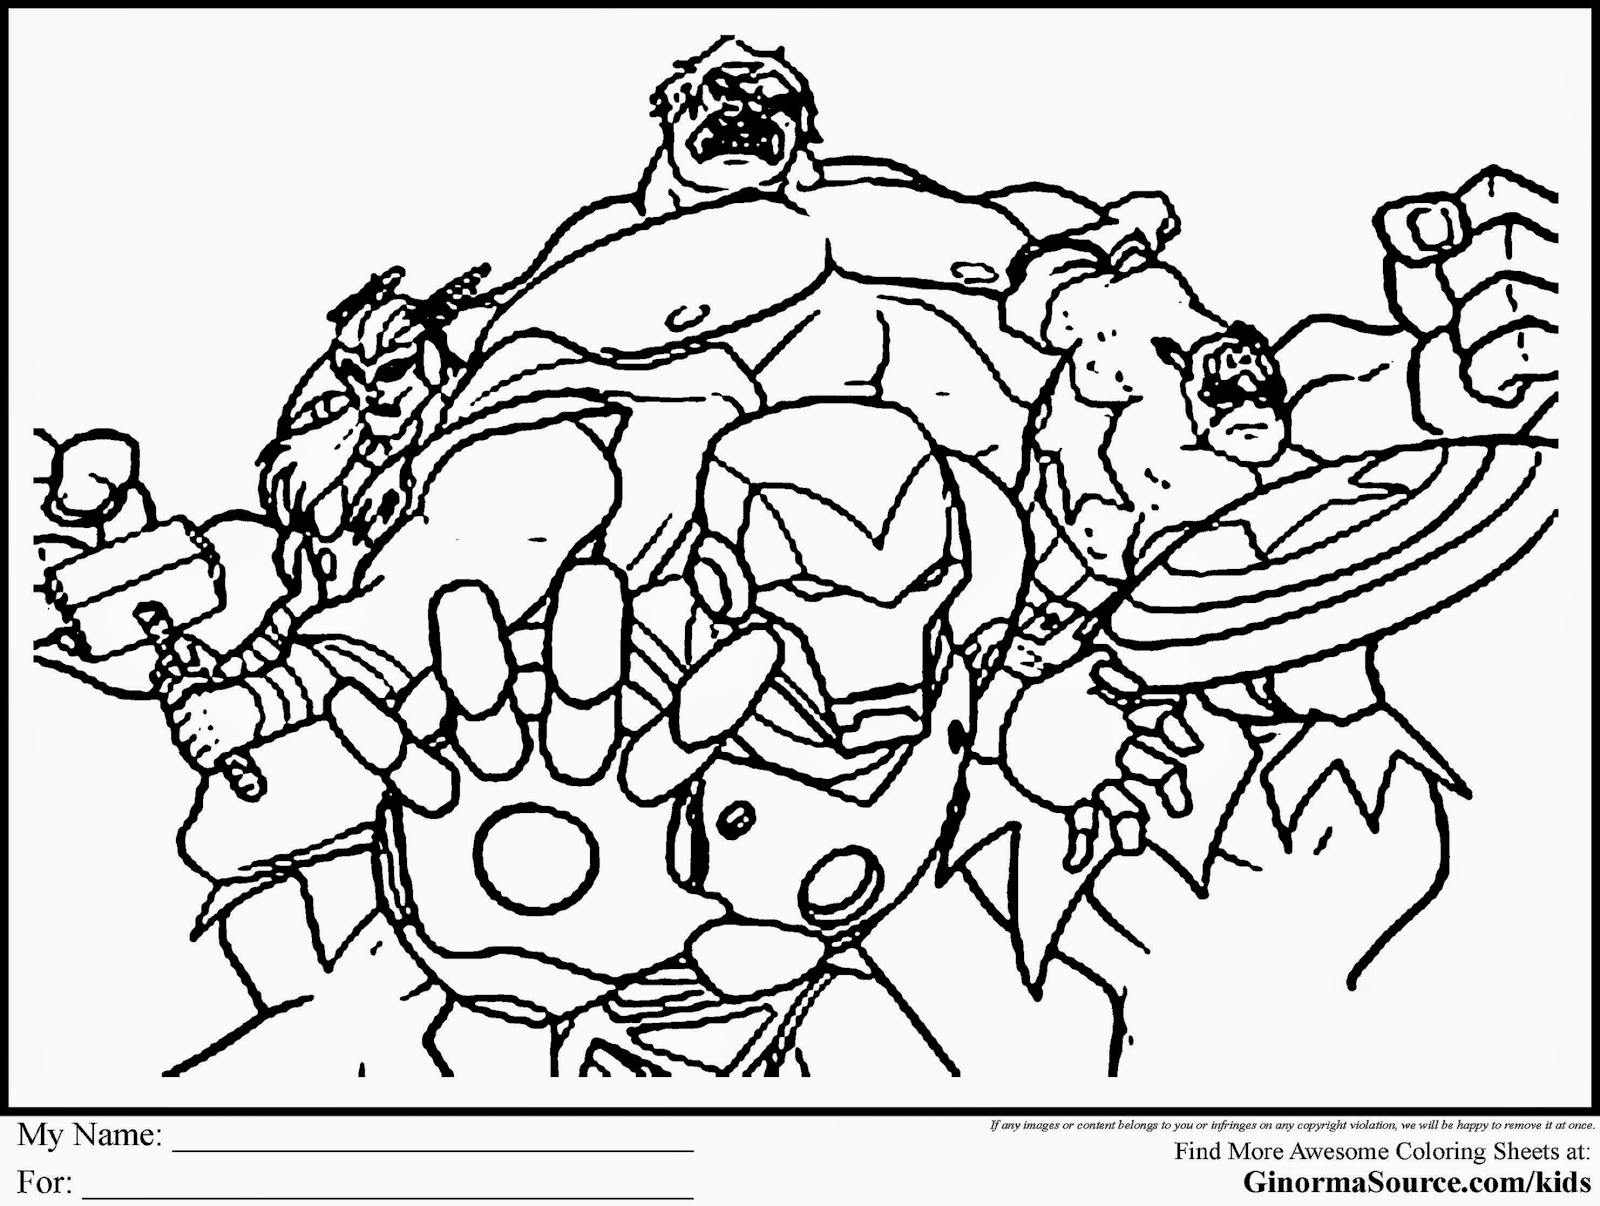 Avengers Symbol Coloring Pages : Avengers symbol coloring pages